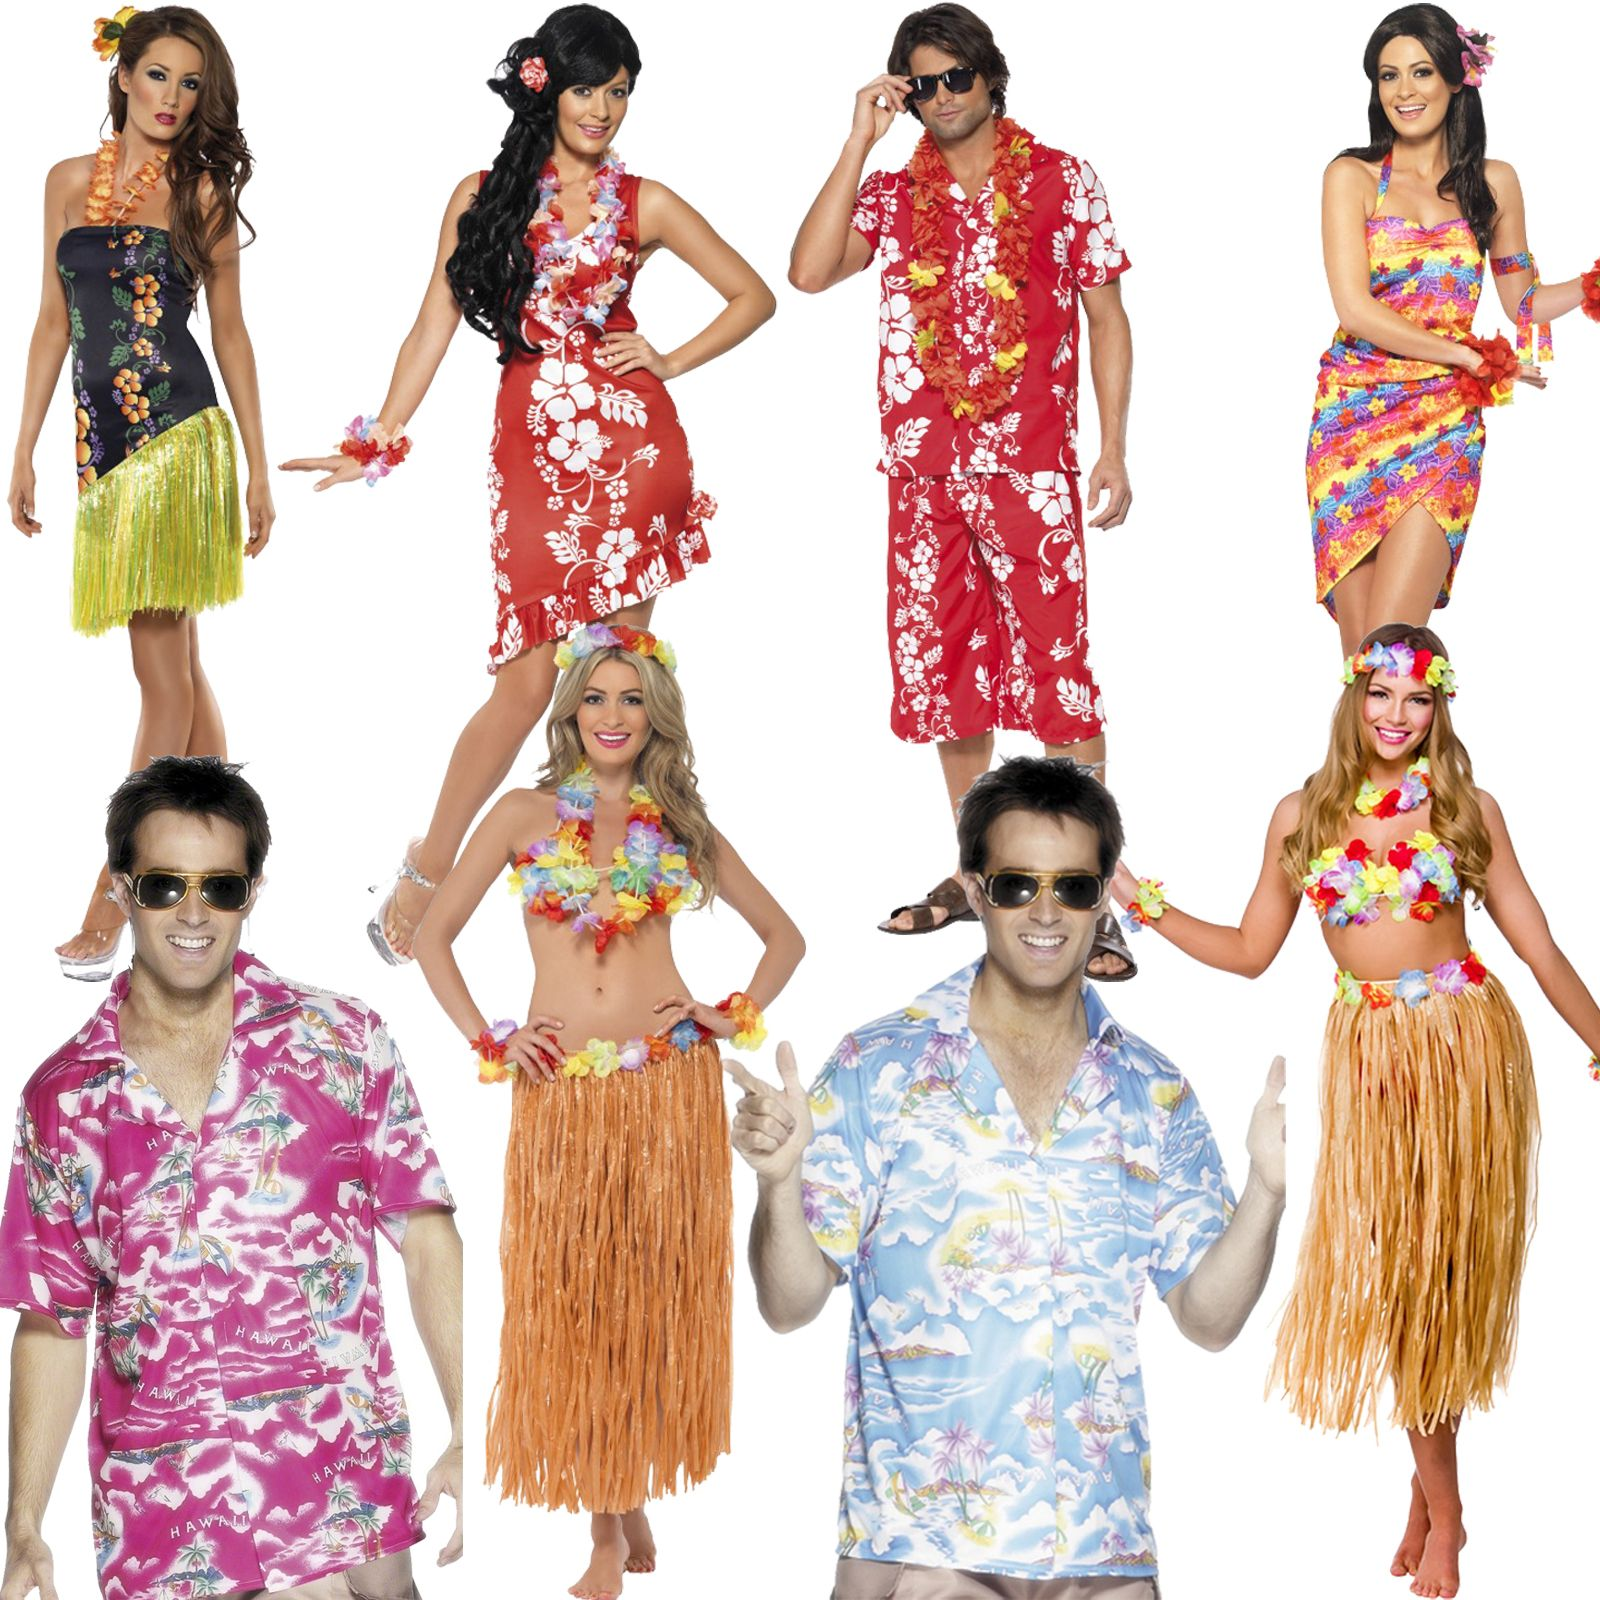 Beach Party Costumes Ideas - Google Search